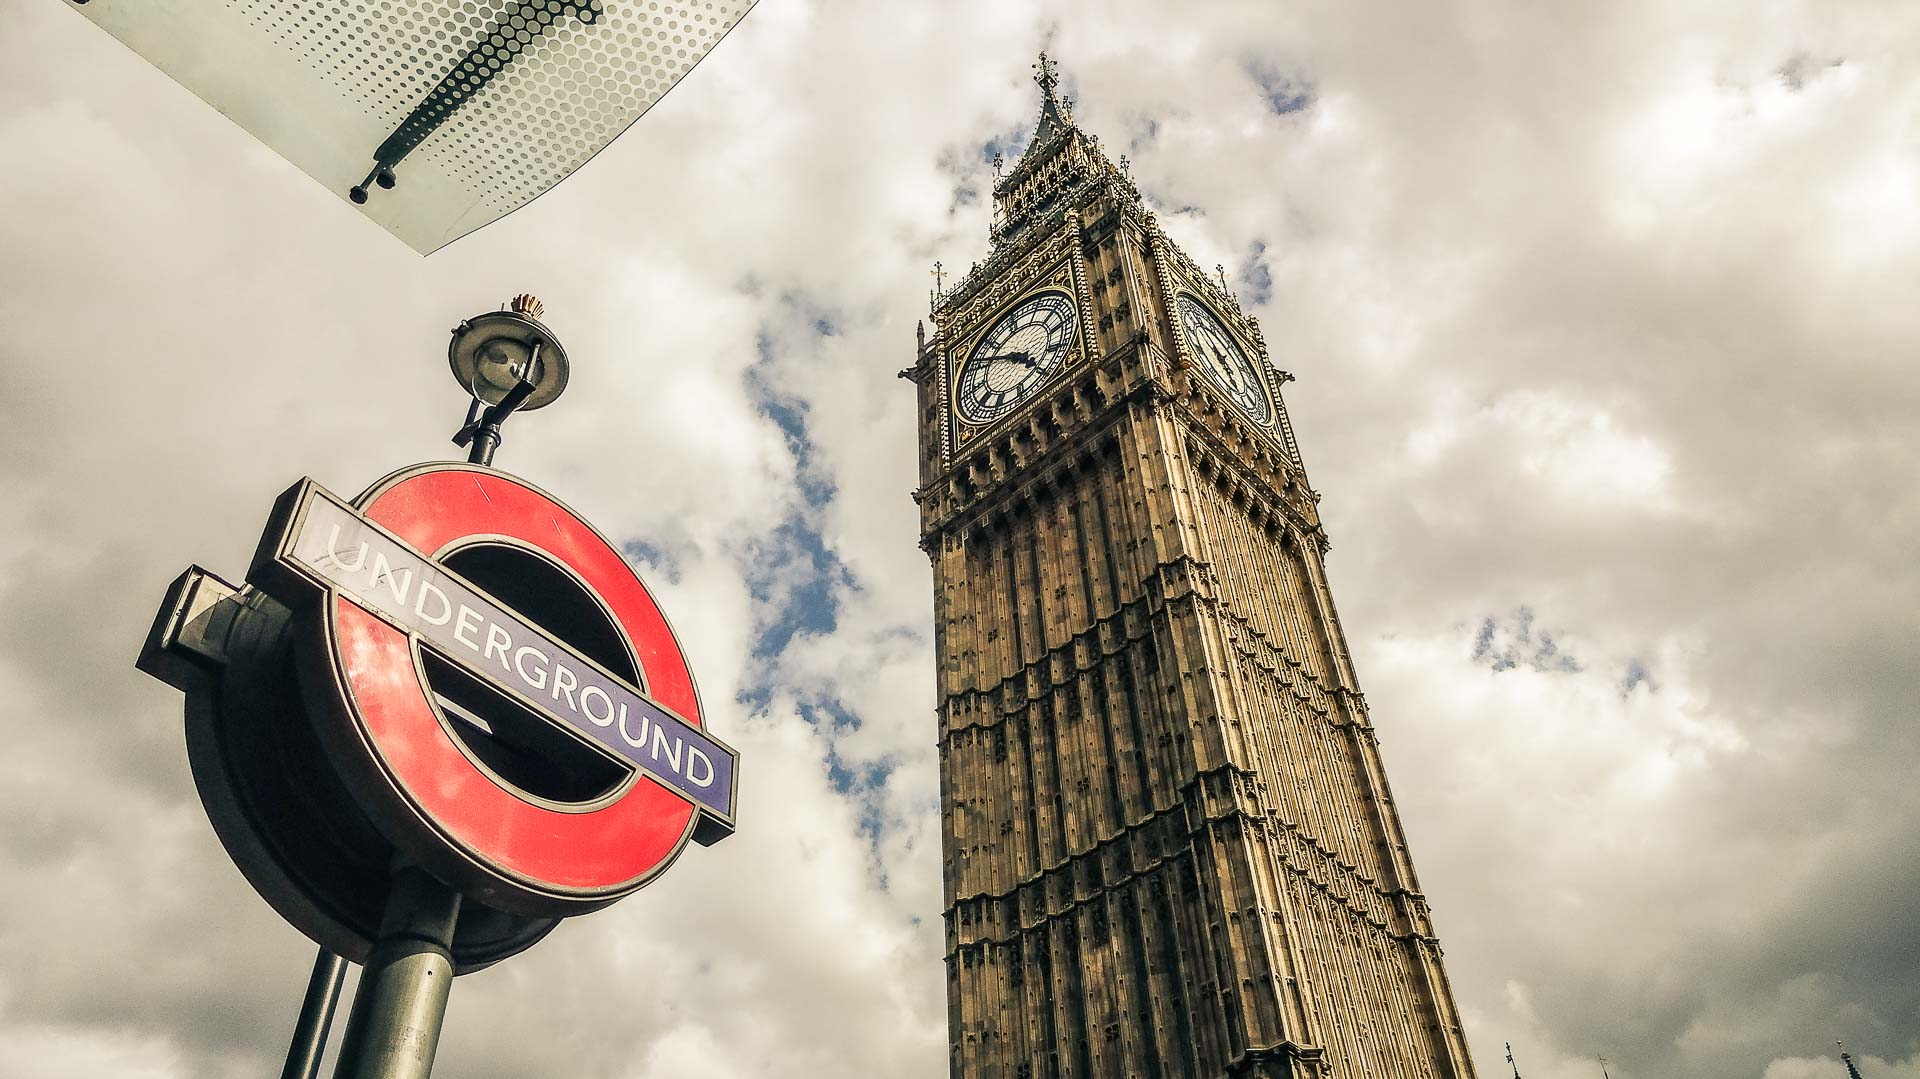 Big Ben and Underground sign in London, England. How expensive is London?